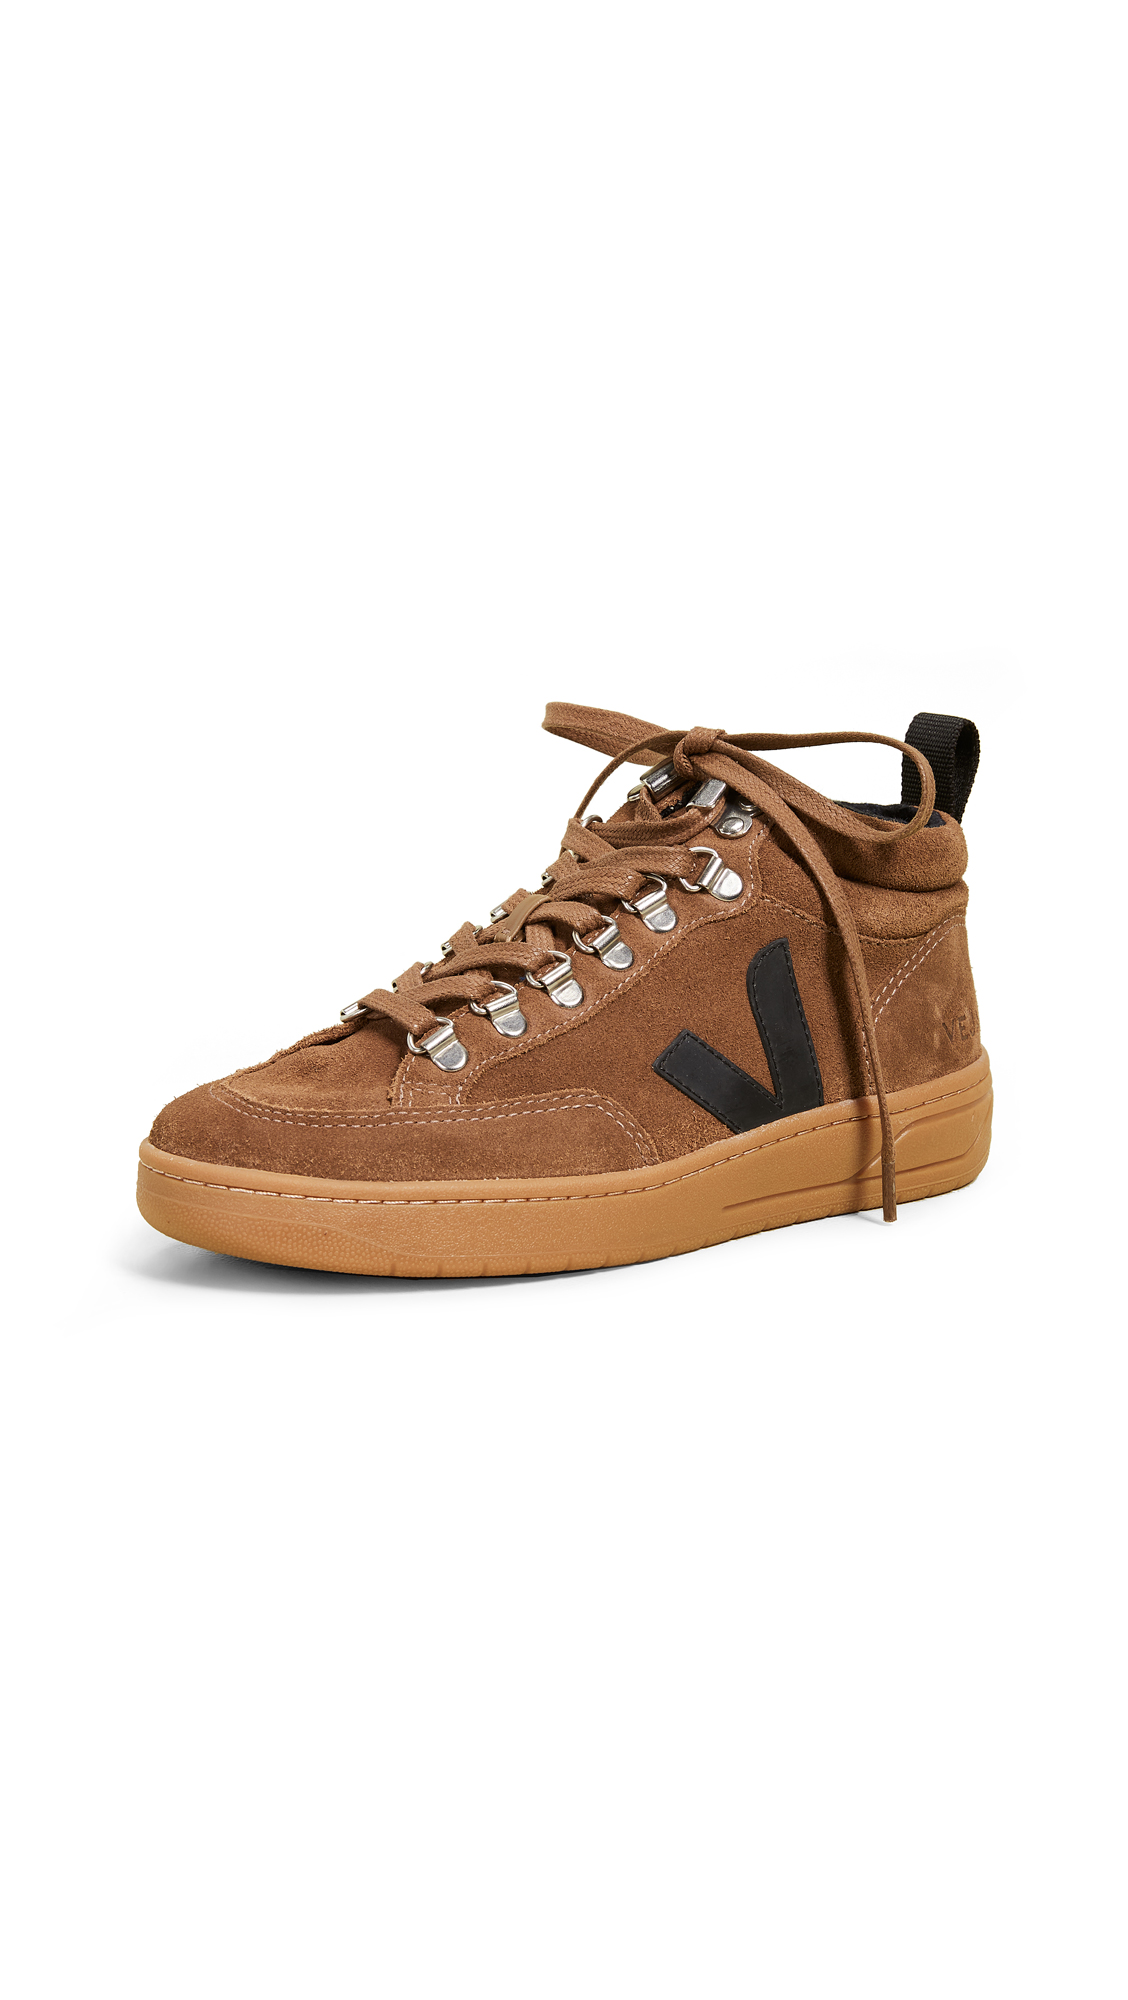 Veja Roraima Sneaker Boots - Brown/Black/Natural